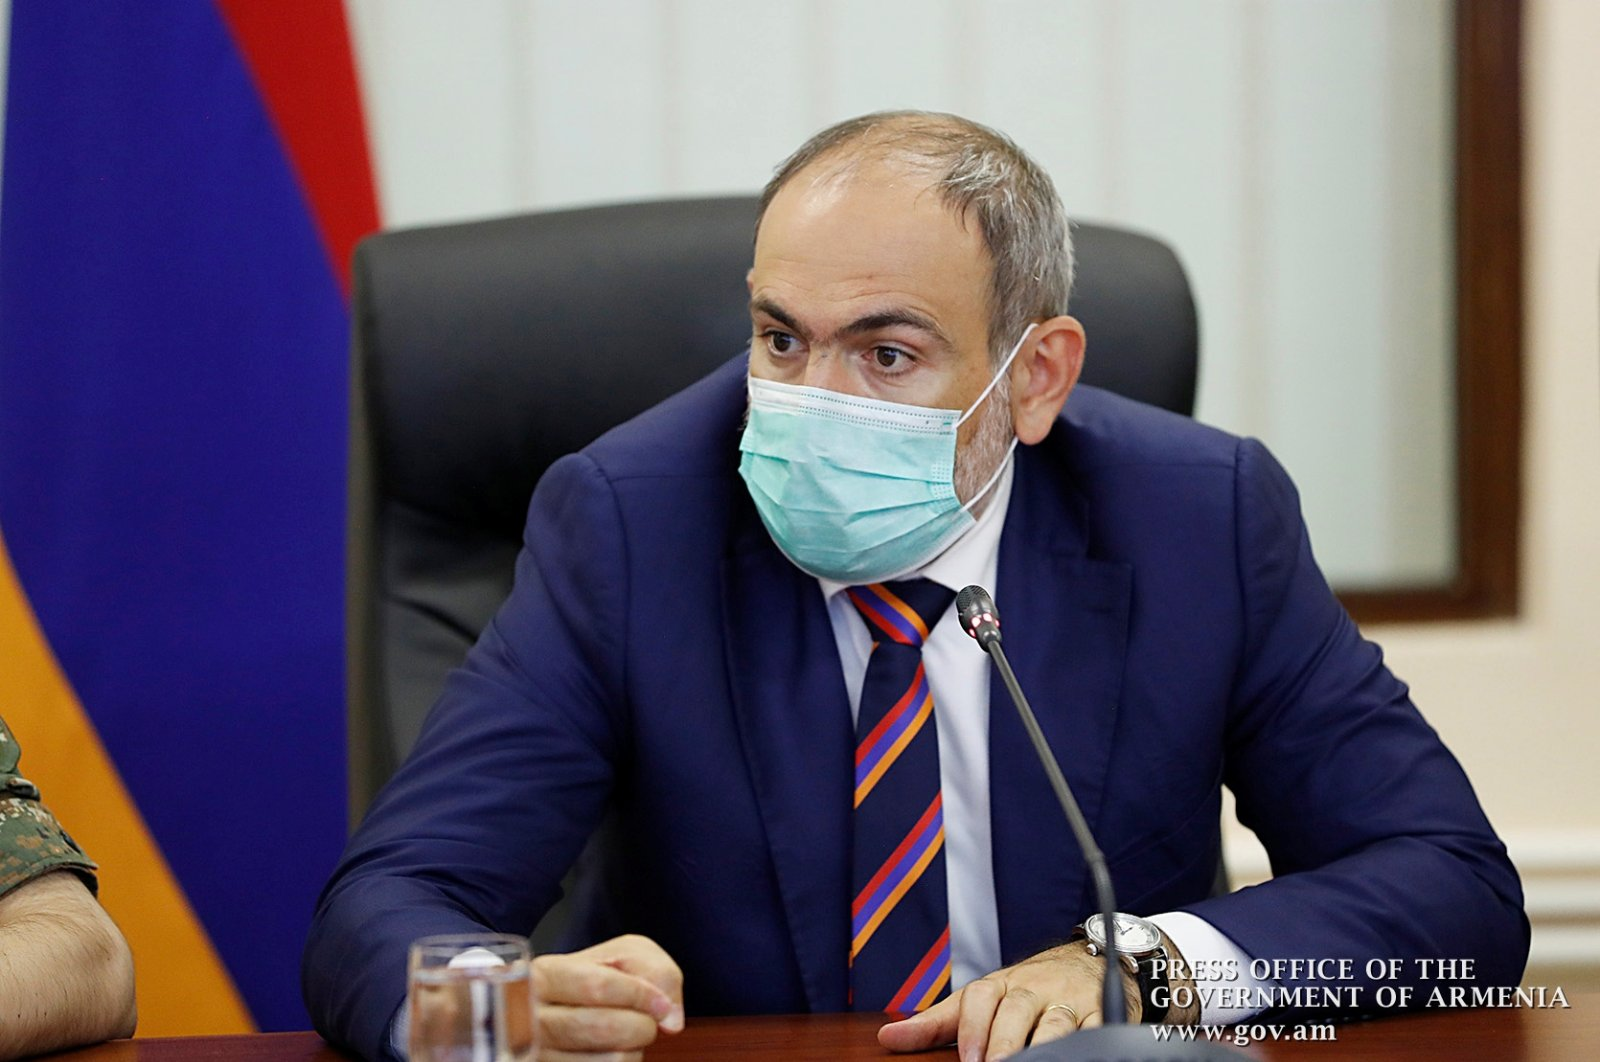 Armenian Prime Minister Nikol Pashinian meets with the country's military leadership following the clashes with the Azerbaijani Armed Forces over the  Nagorno-Karabakh region, Yerevan, Armenia, Sept. 27, 2020. (REUTERS Photo)